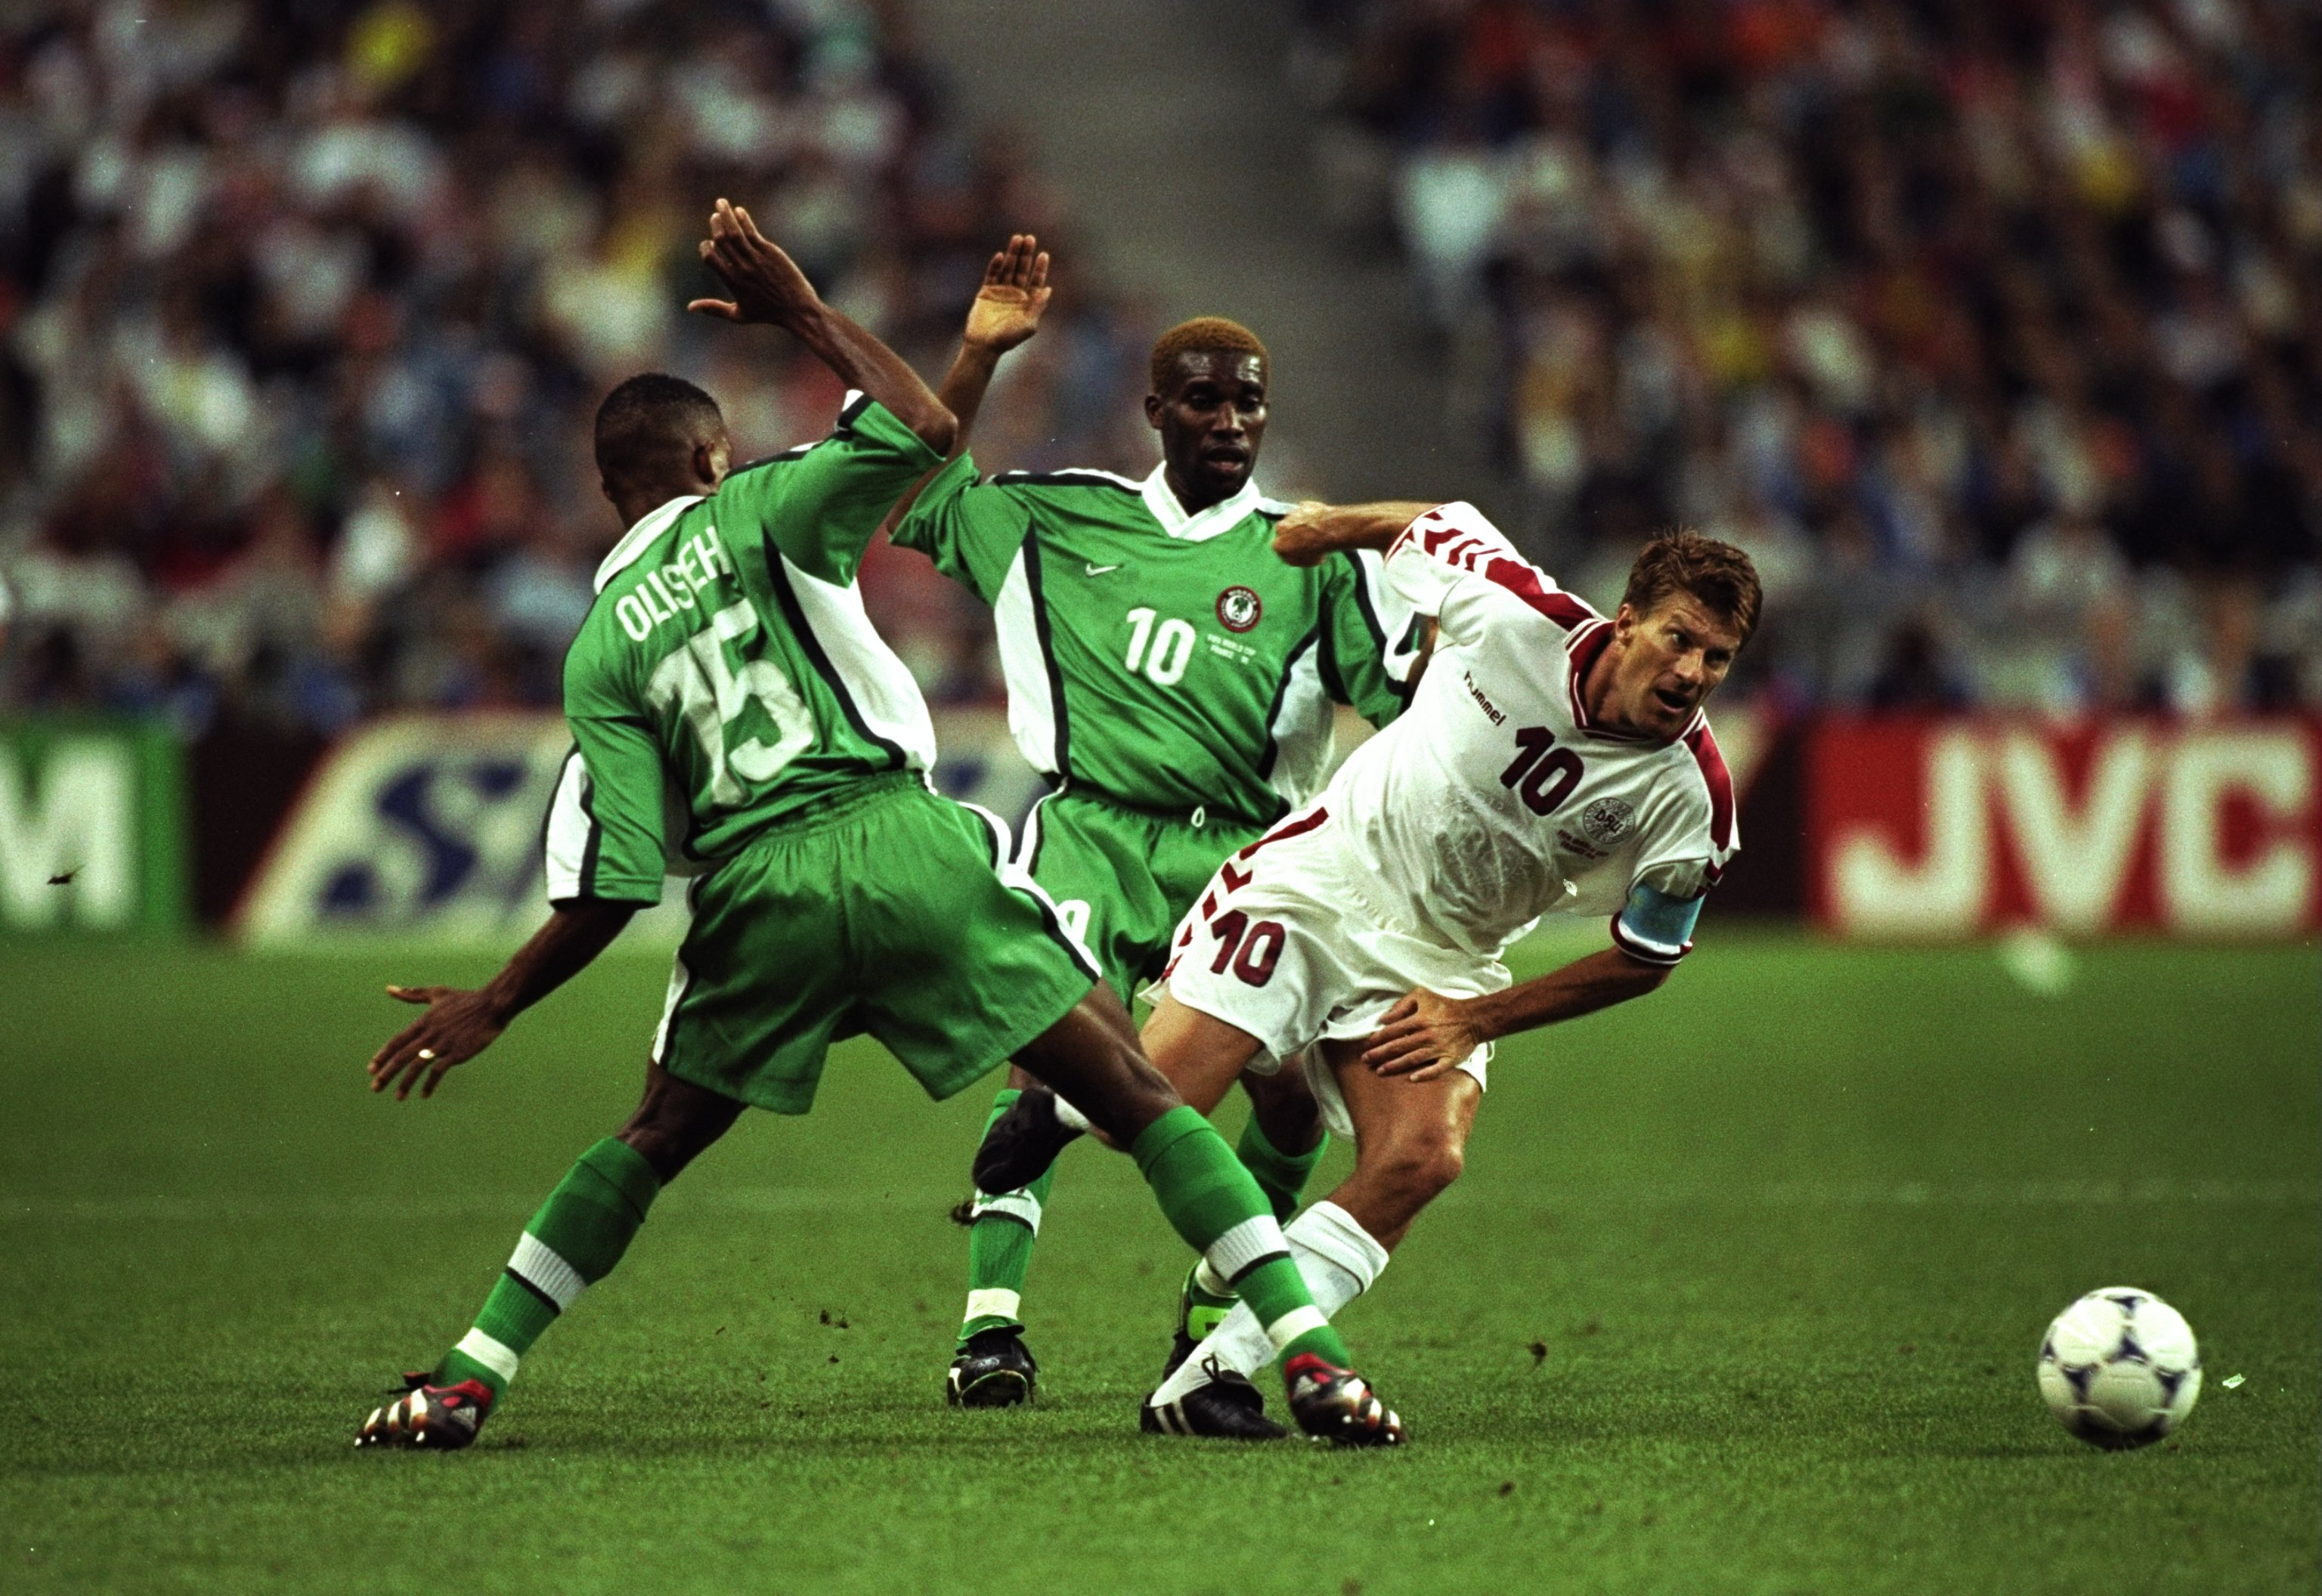 28 Jun 1998:  Denmark captain Michael Laudrup twists past Sunday Oliseh and Jay-Jay Okocha of Nigeria during the World Cup second round match at the Stade de France in St Denis, France. Denmark won 4-1. \ Mandatory Credit: Clive Brunskill /Allsport